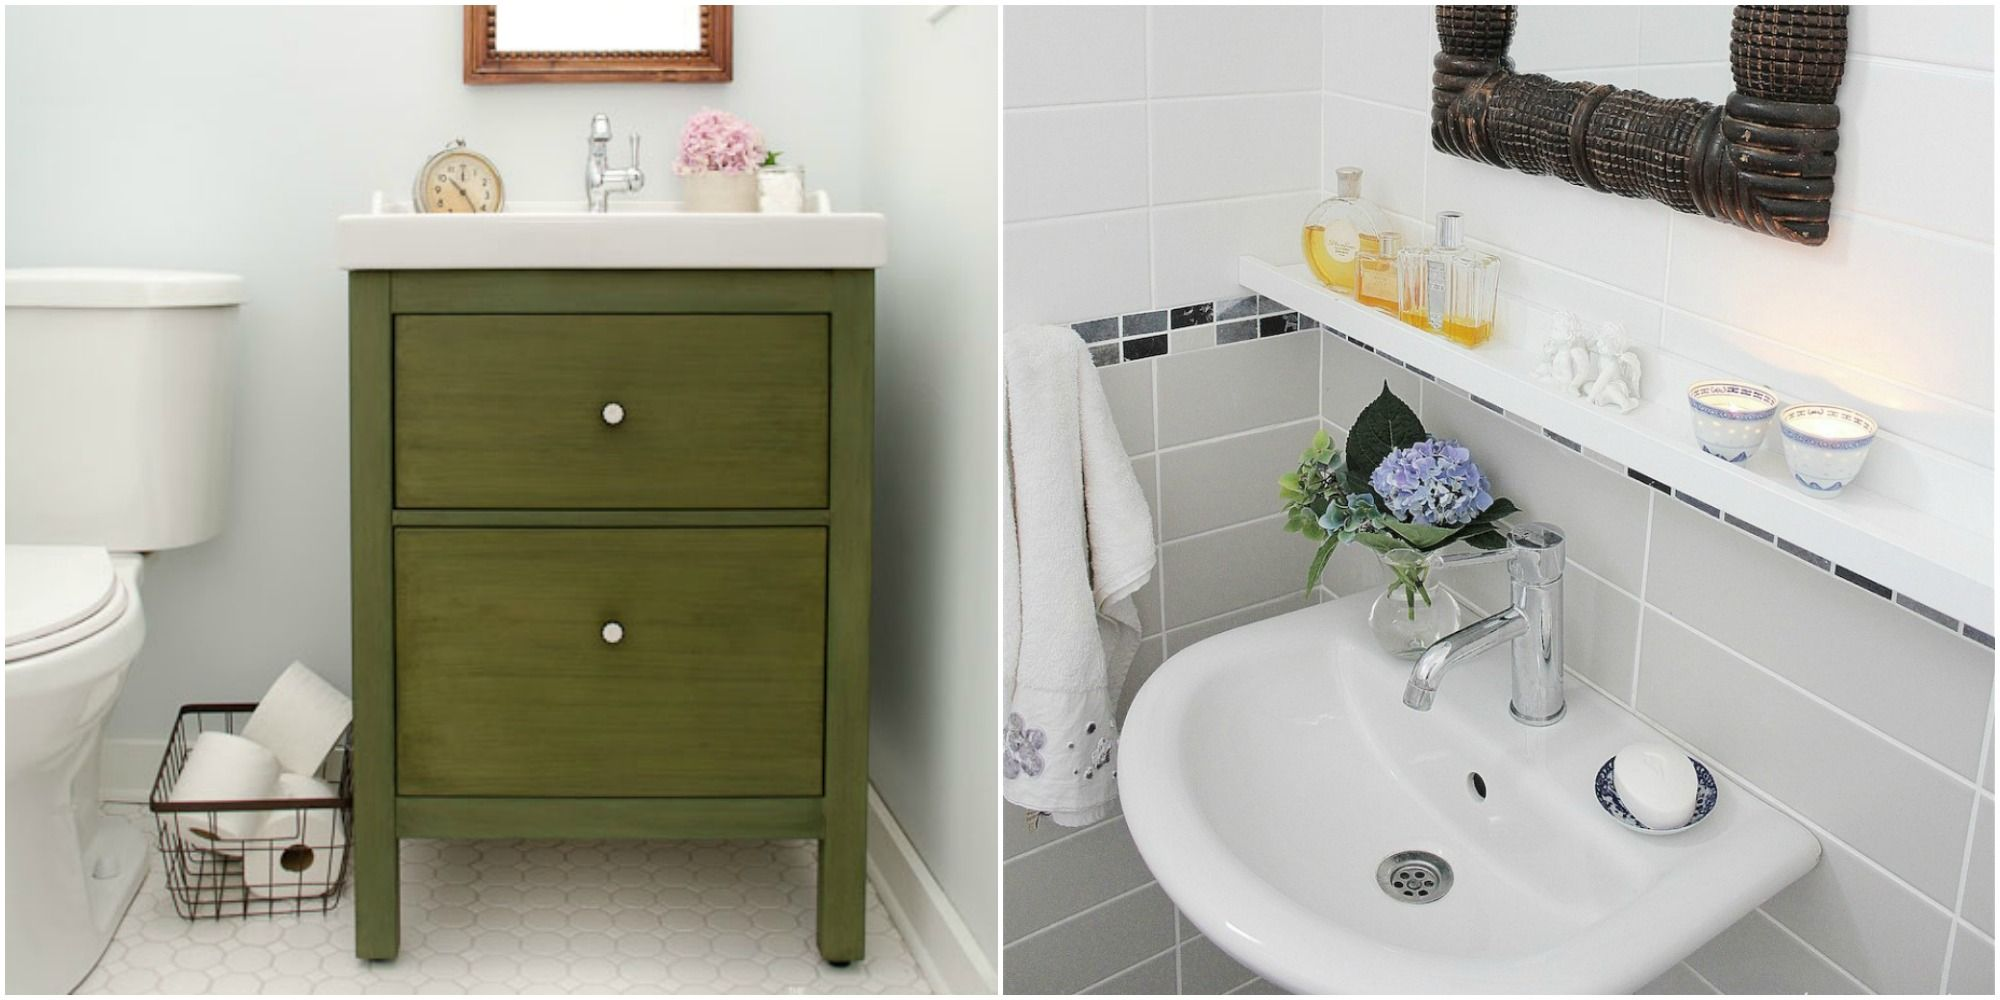 Bathroom Space Saver Ikea 11 Ikea Bathroom Hacks New Uses For Ikea Items In The Bathroom